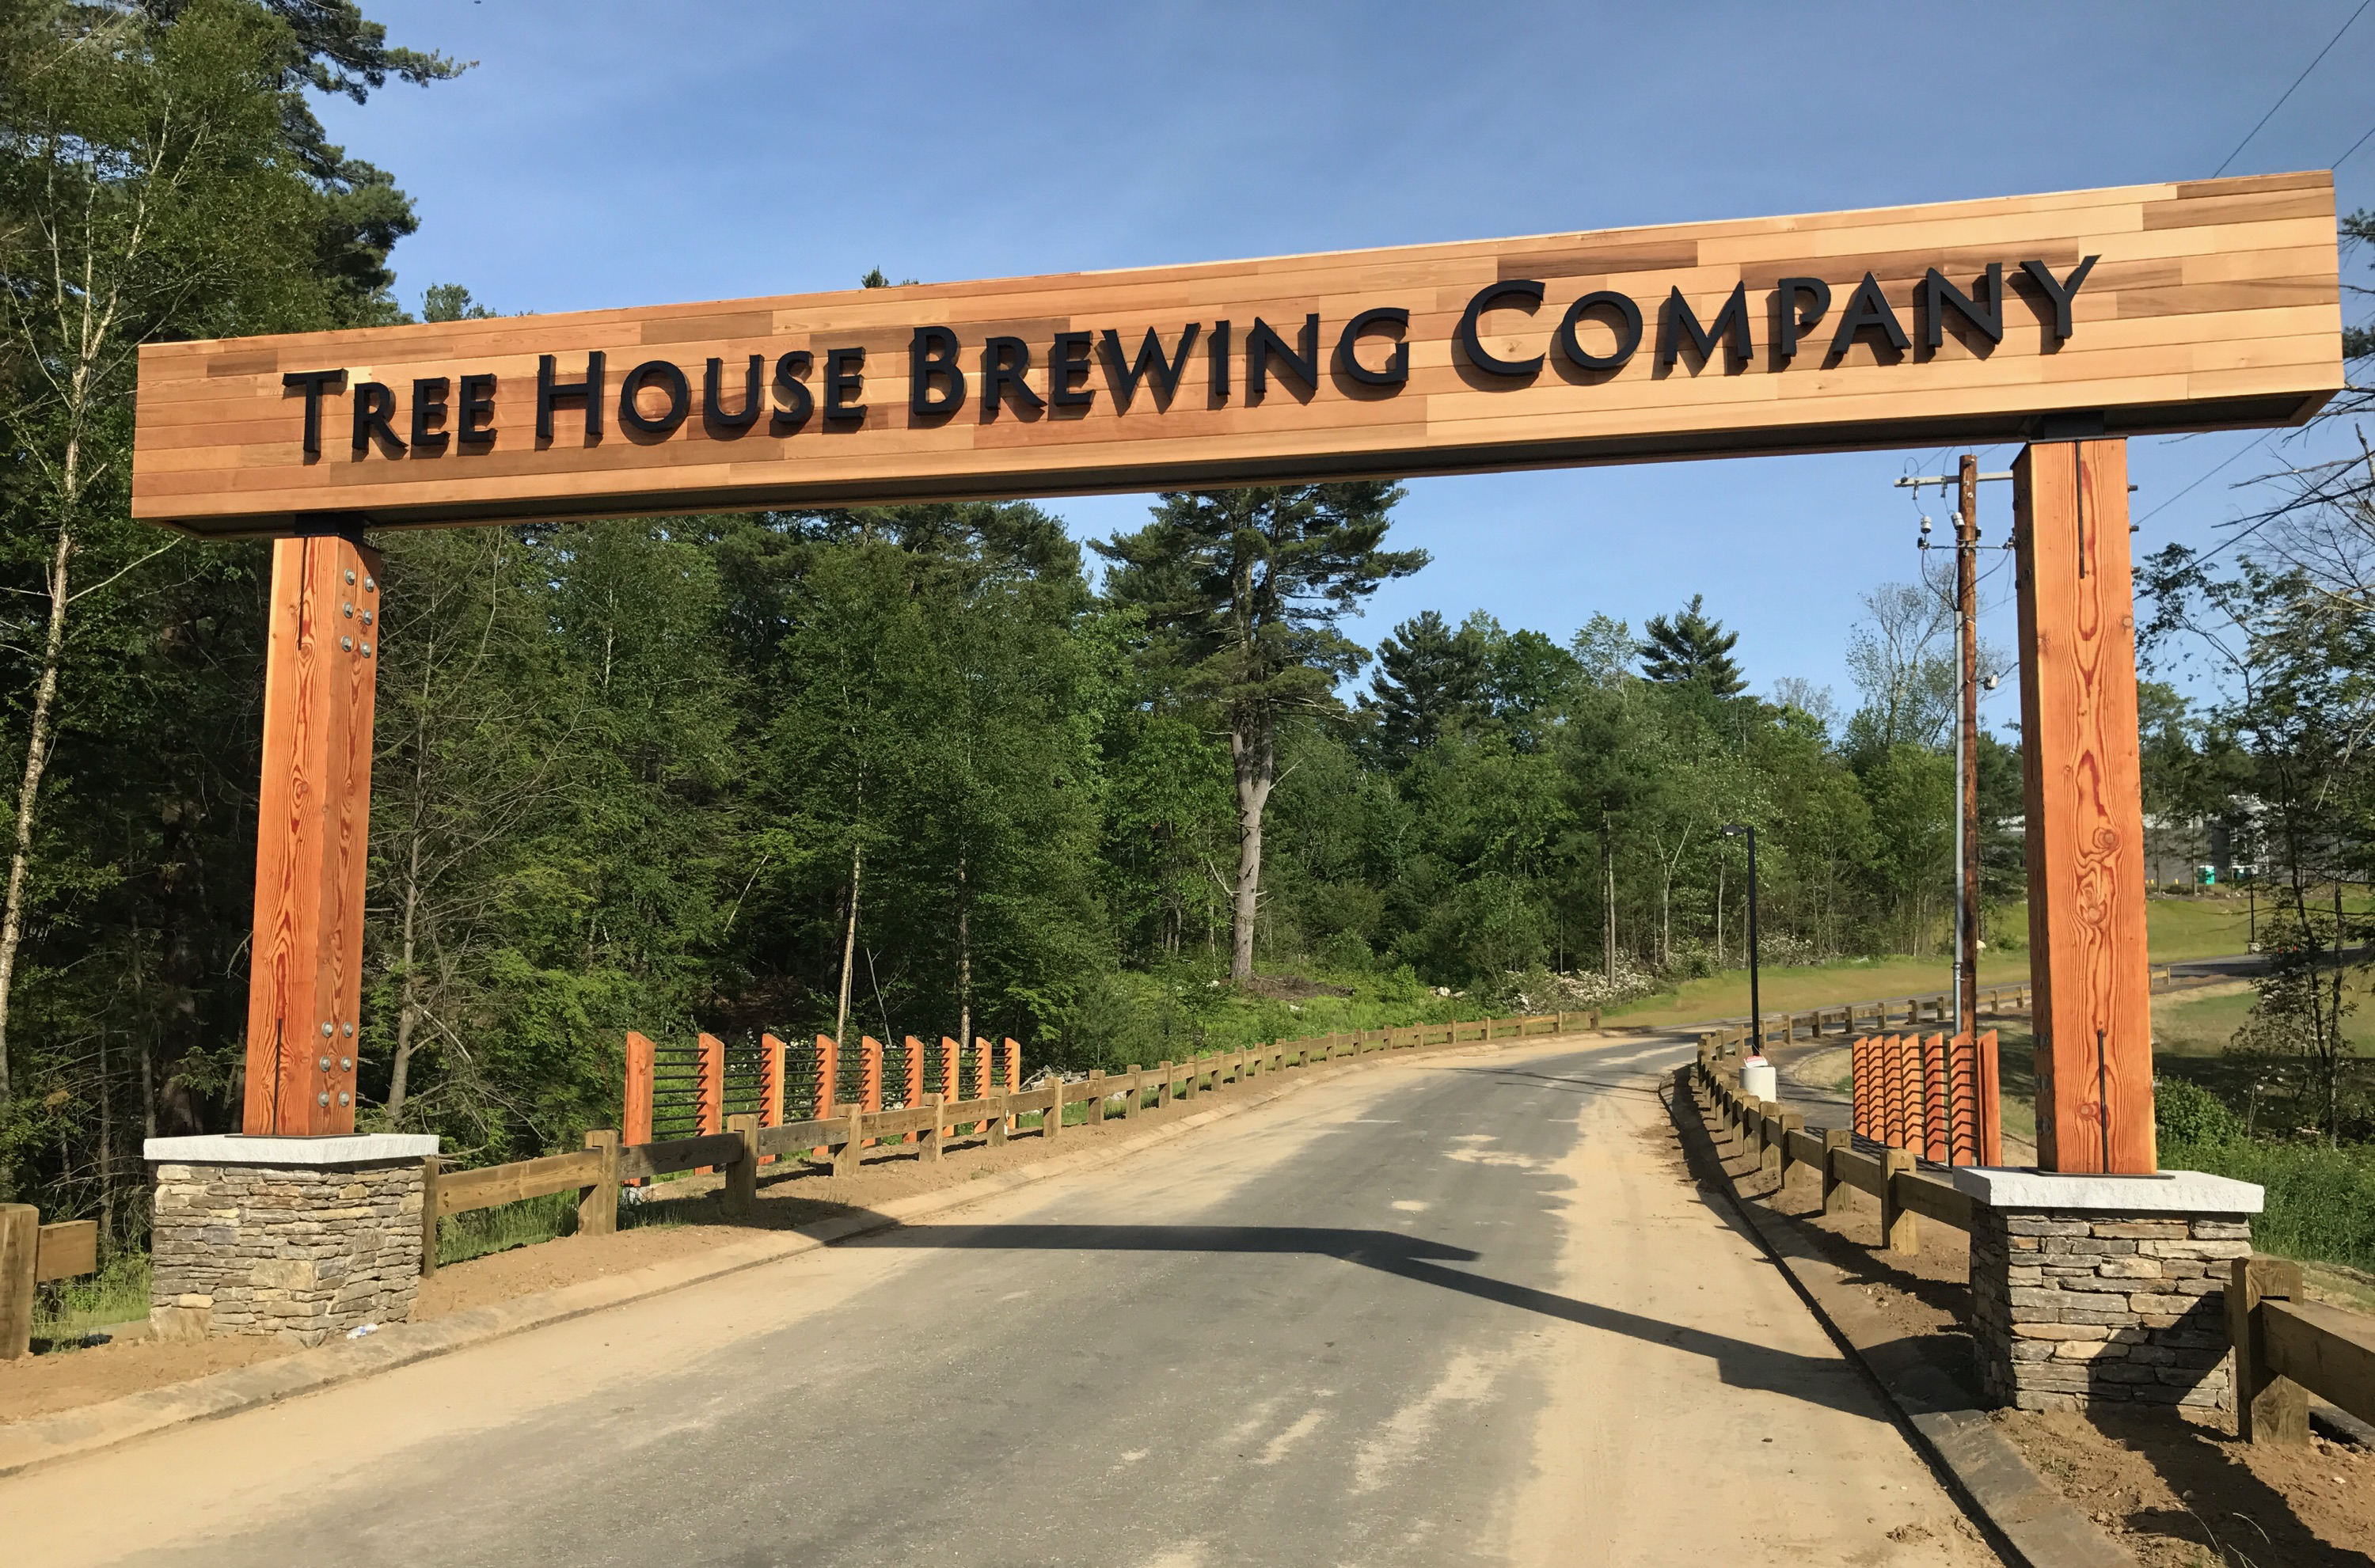 Tree House Brewing Company Sign